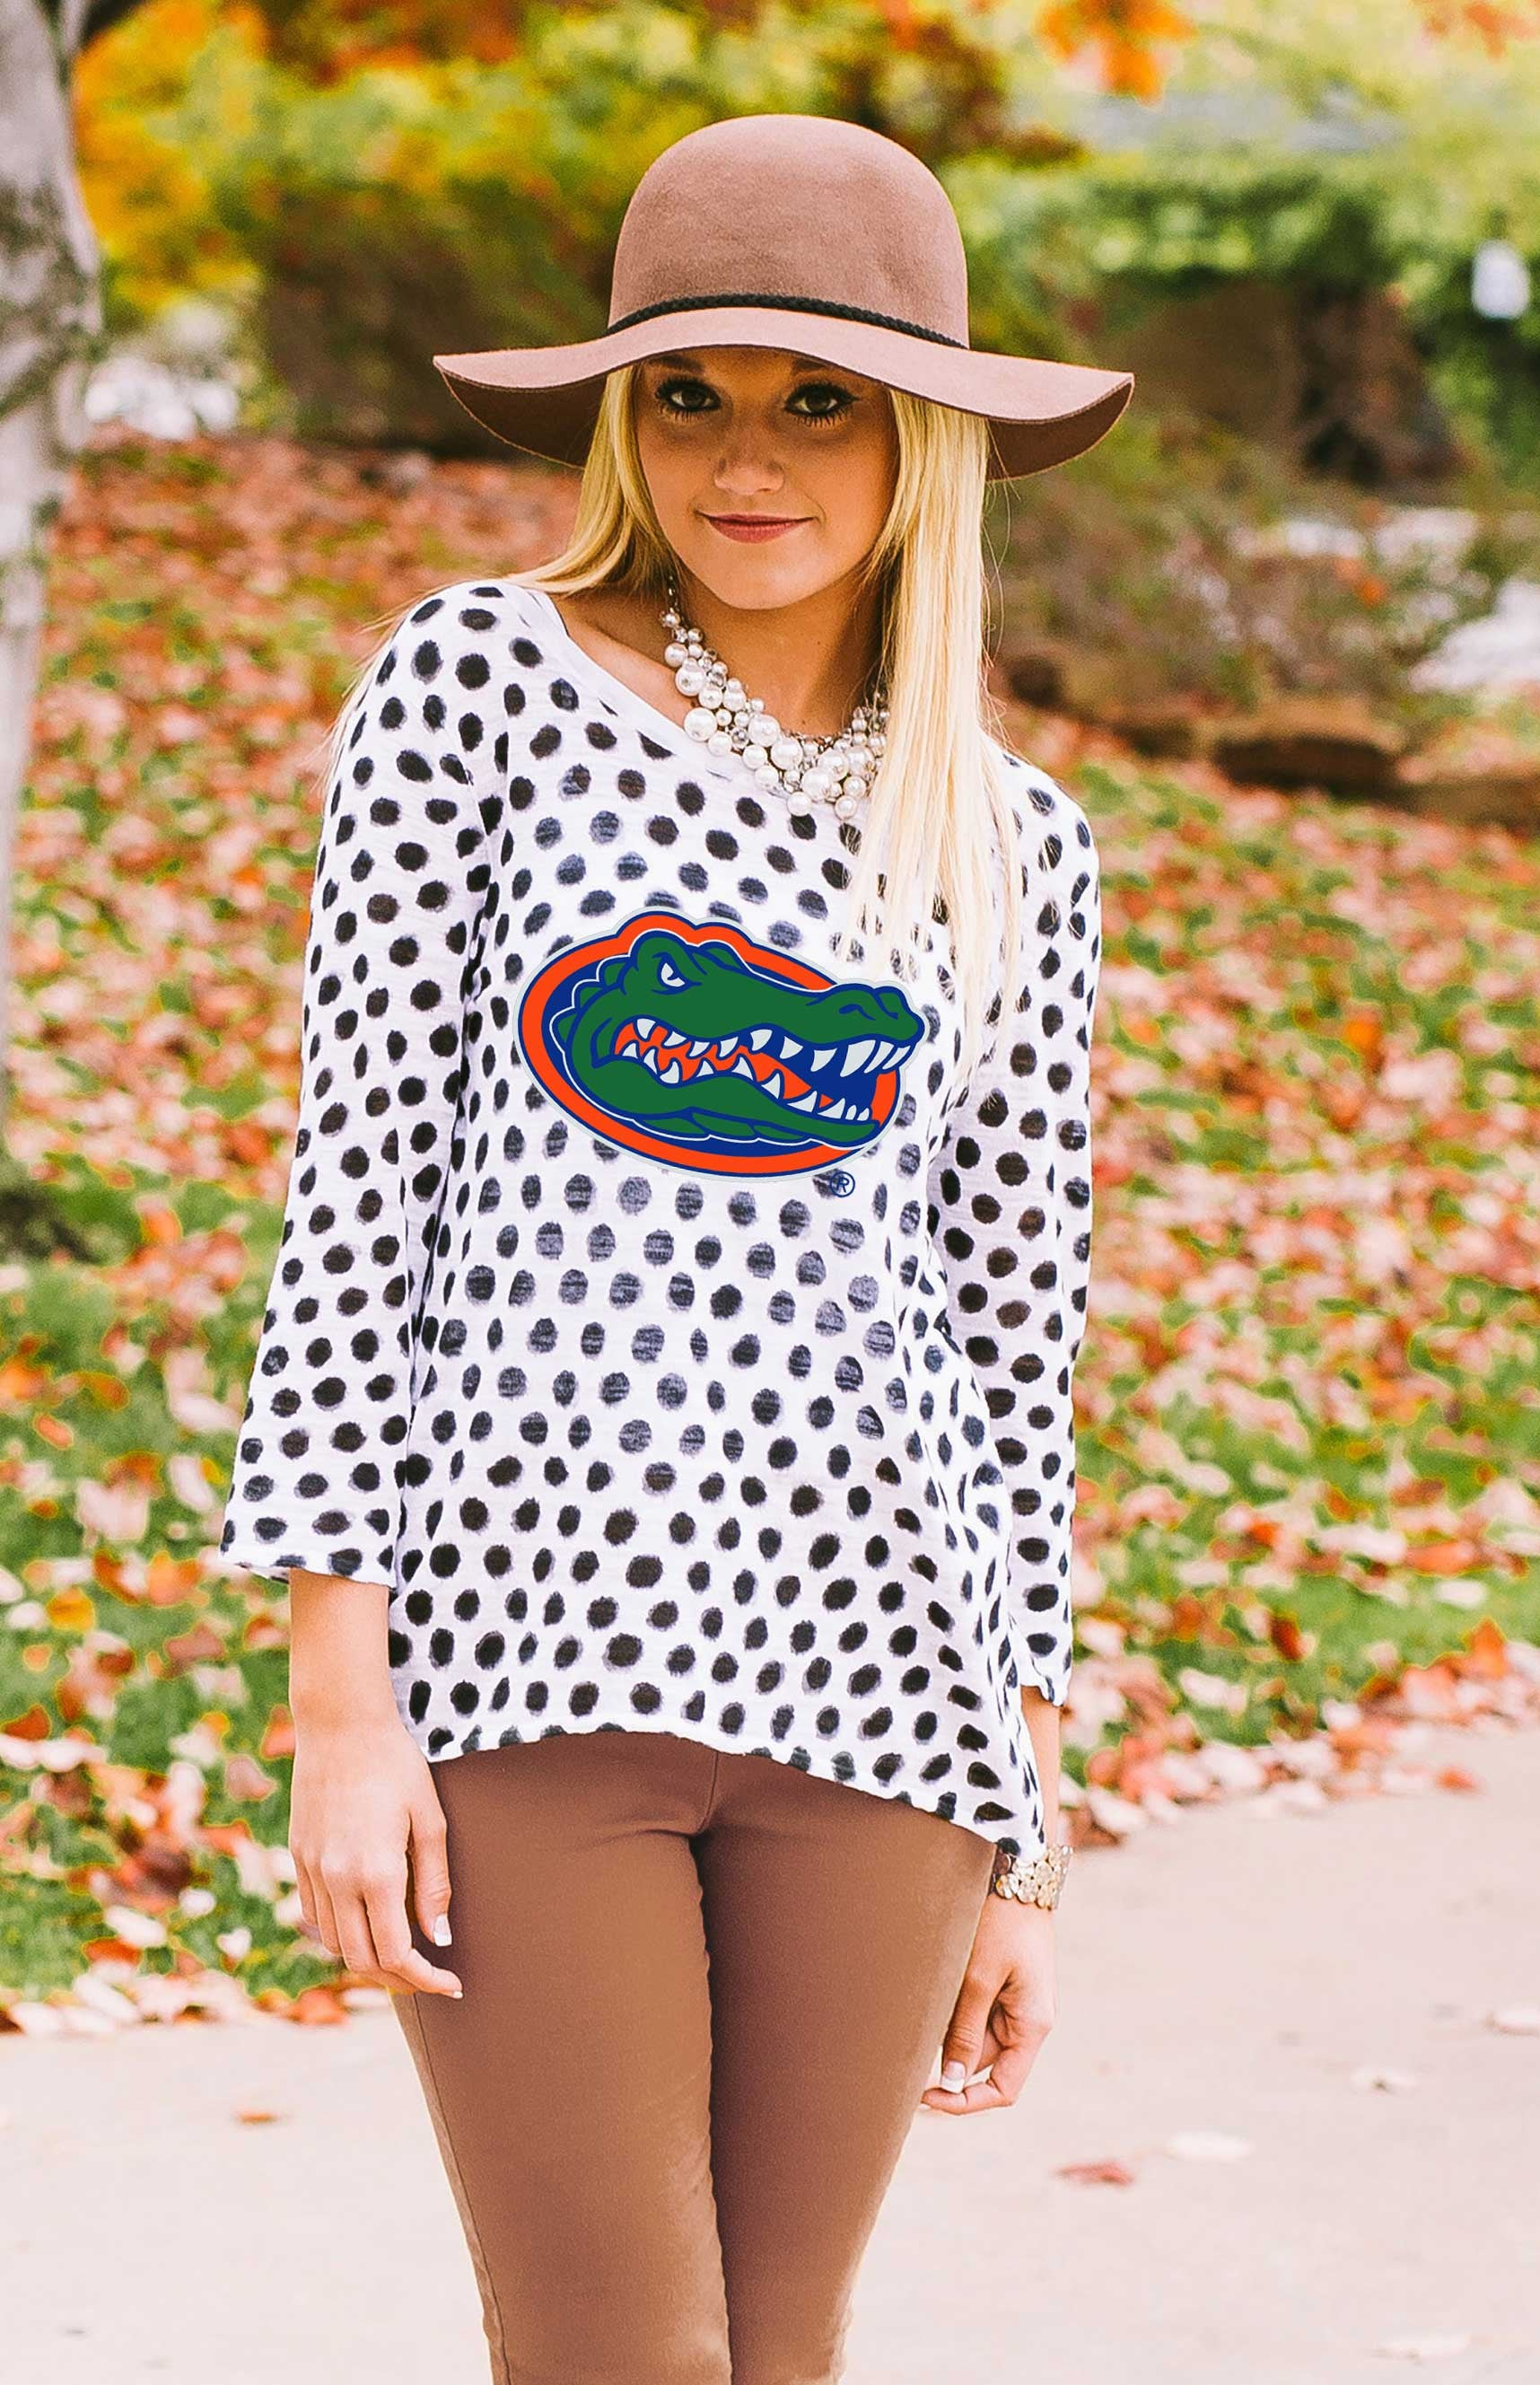 Gators Open Back Polka Dot Sweater Sweater Game Day Couture - Bows and Arrows FSU Seminoles and UF Gators Women's Game Day Dresses and Apparel